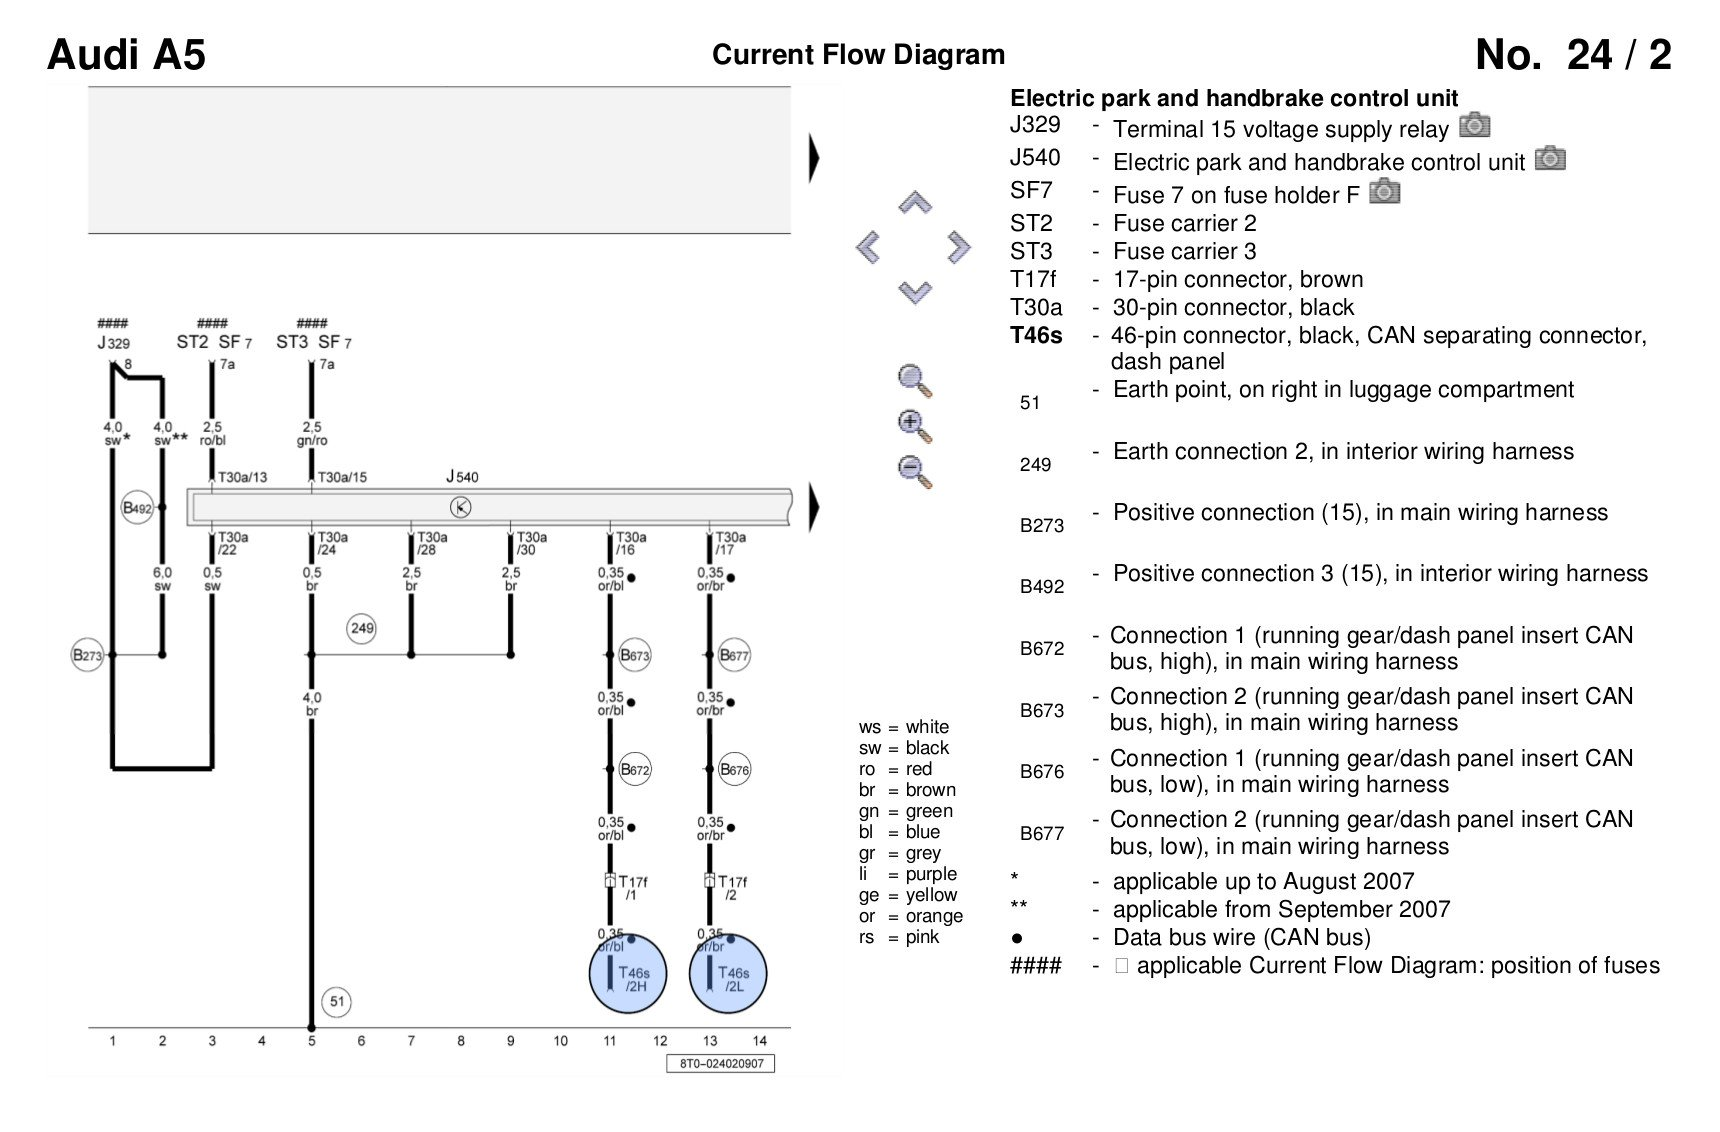 Can Wiring And Coding For Aps Audi A5 Forum S5 Symphony 2 Diagram Click Image Larger Version Name Electric Park Views 1308 Size 2294